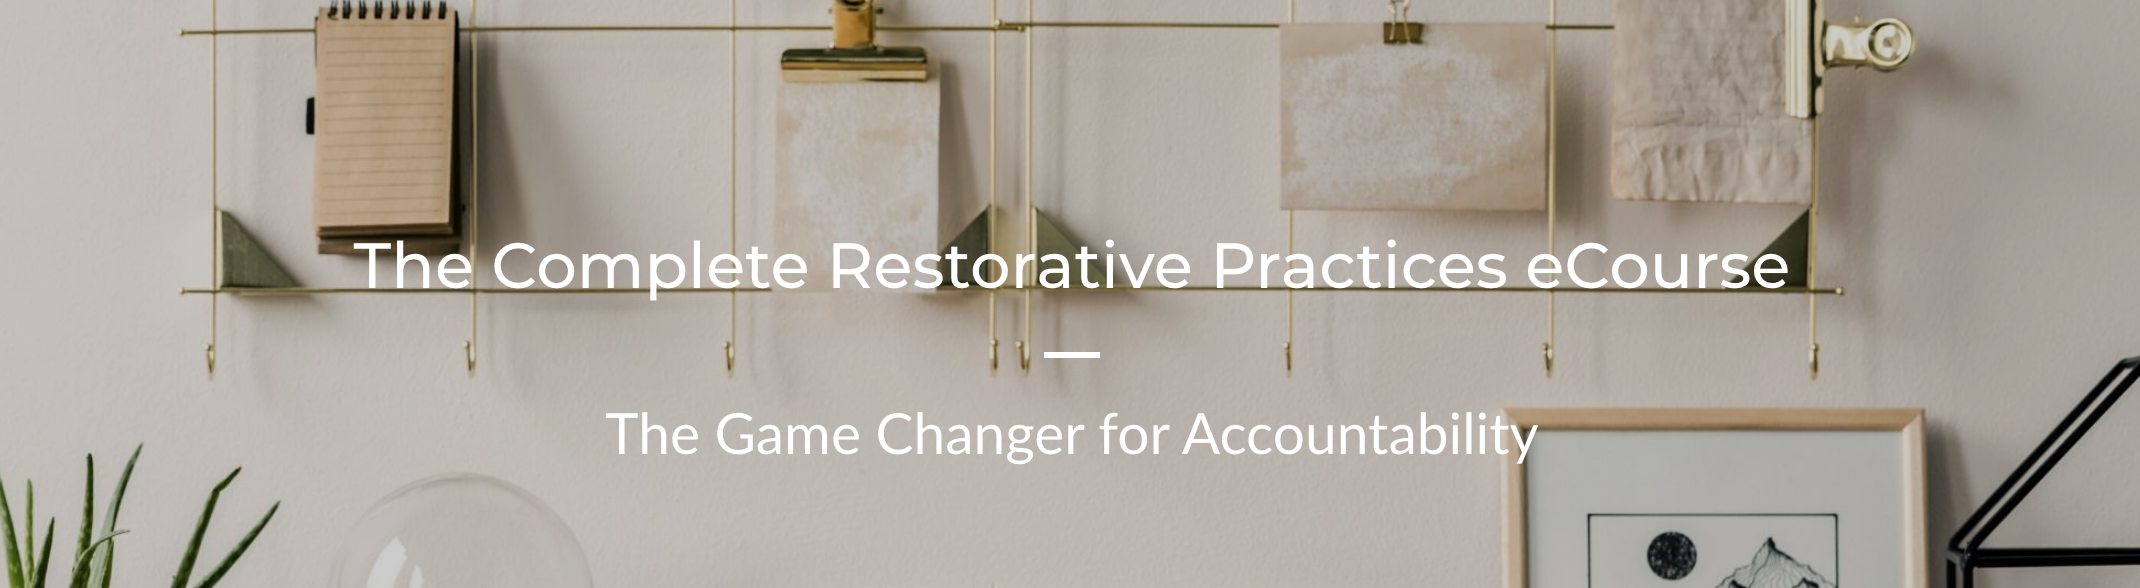 Restorative Practices Course Header